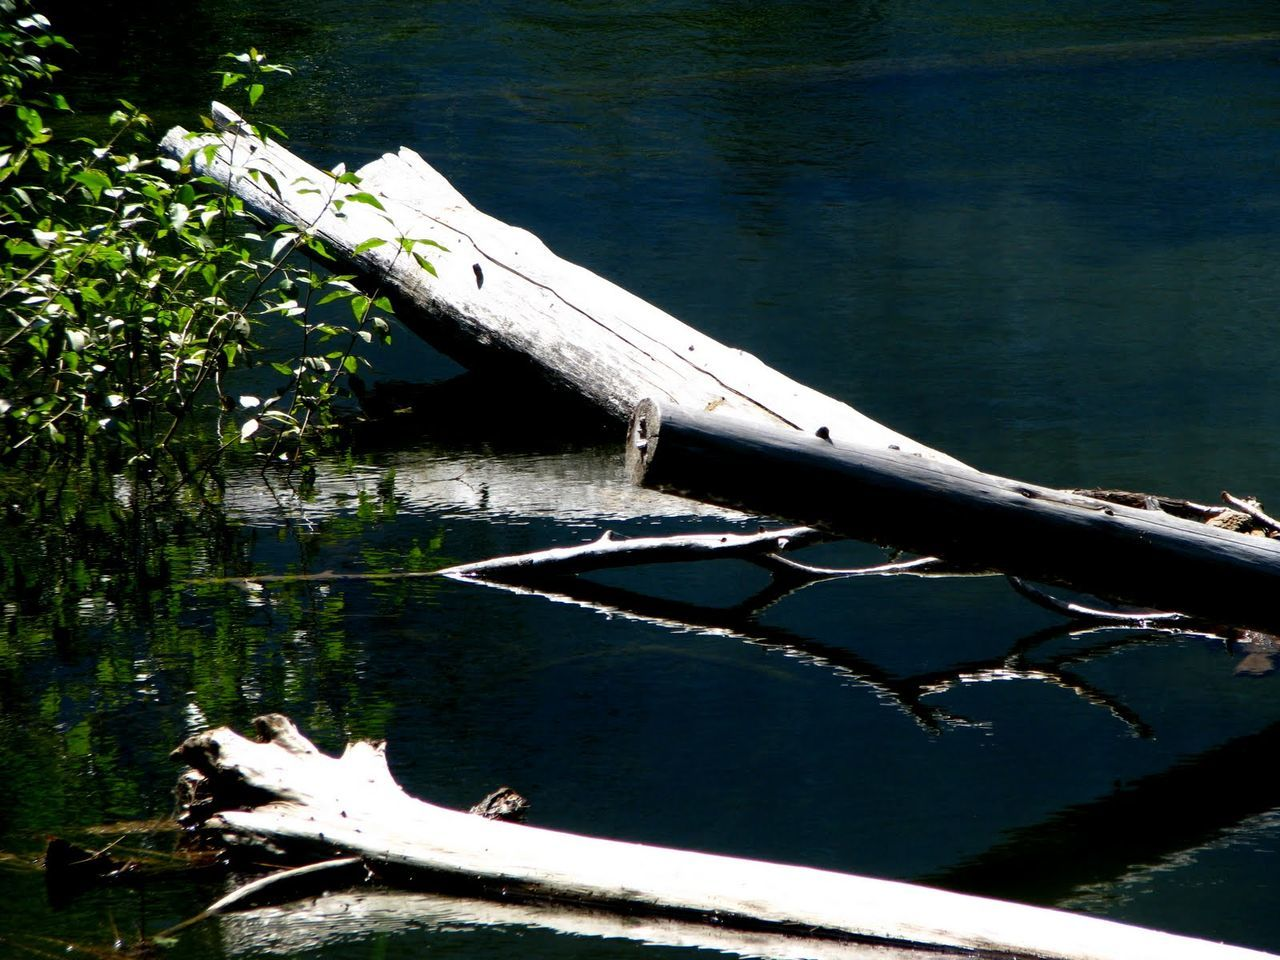 water, day, nature, no people, outdoors, lake, beauty in nature, nautical vessel, tree, close-up, animal themes